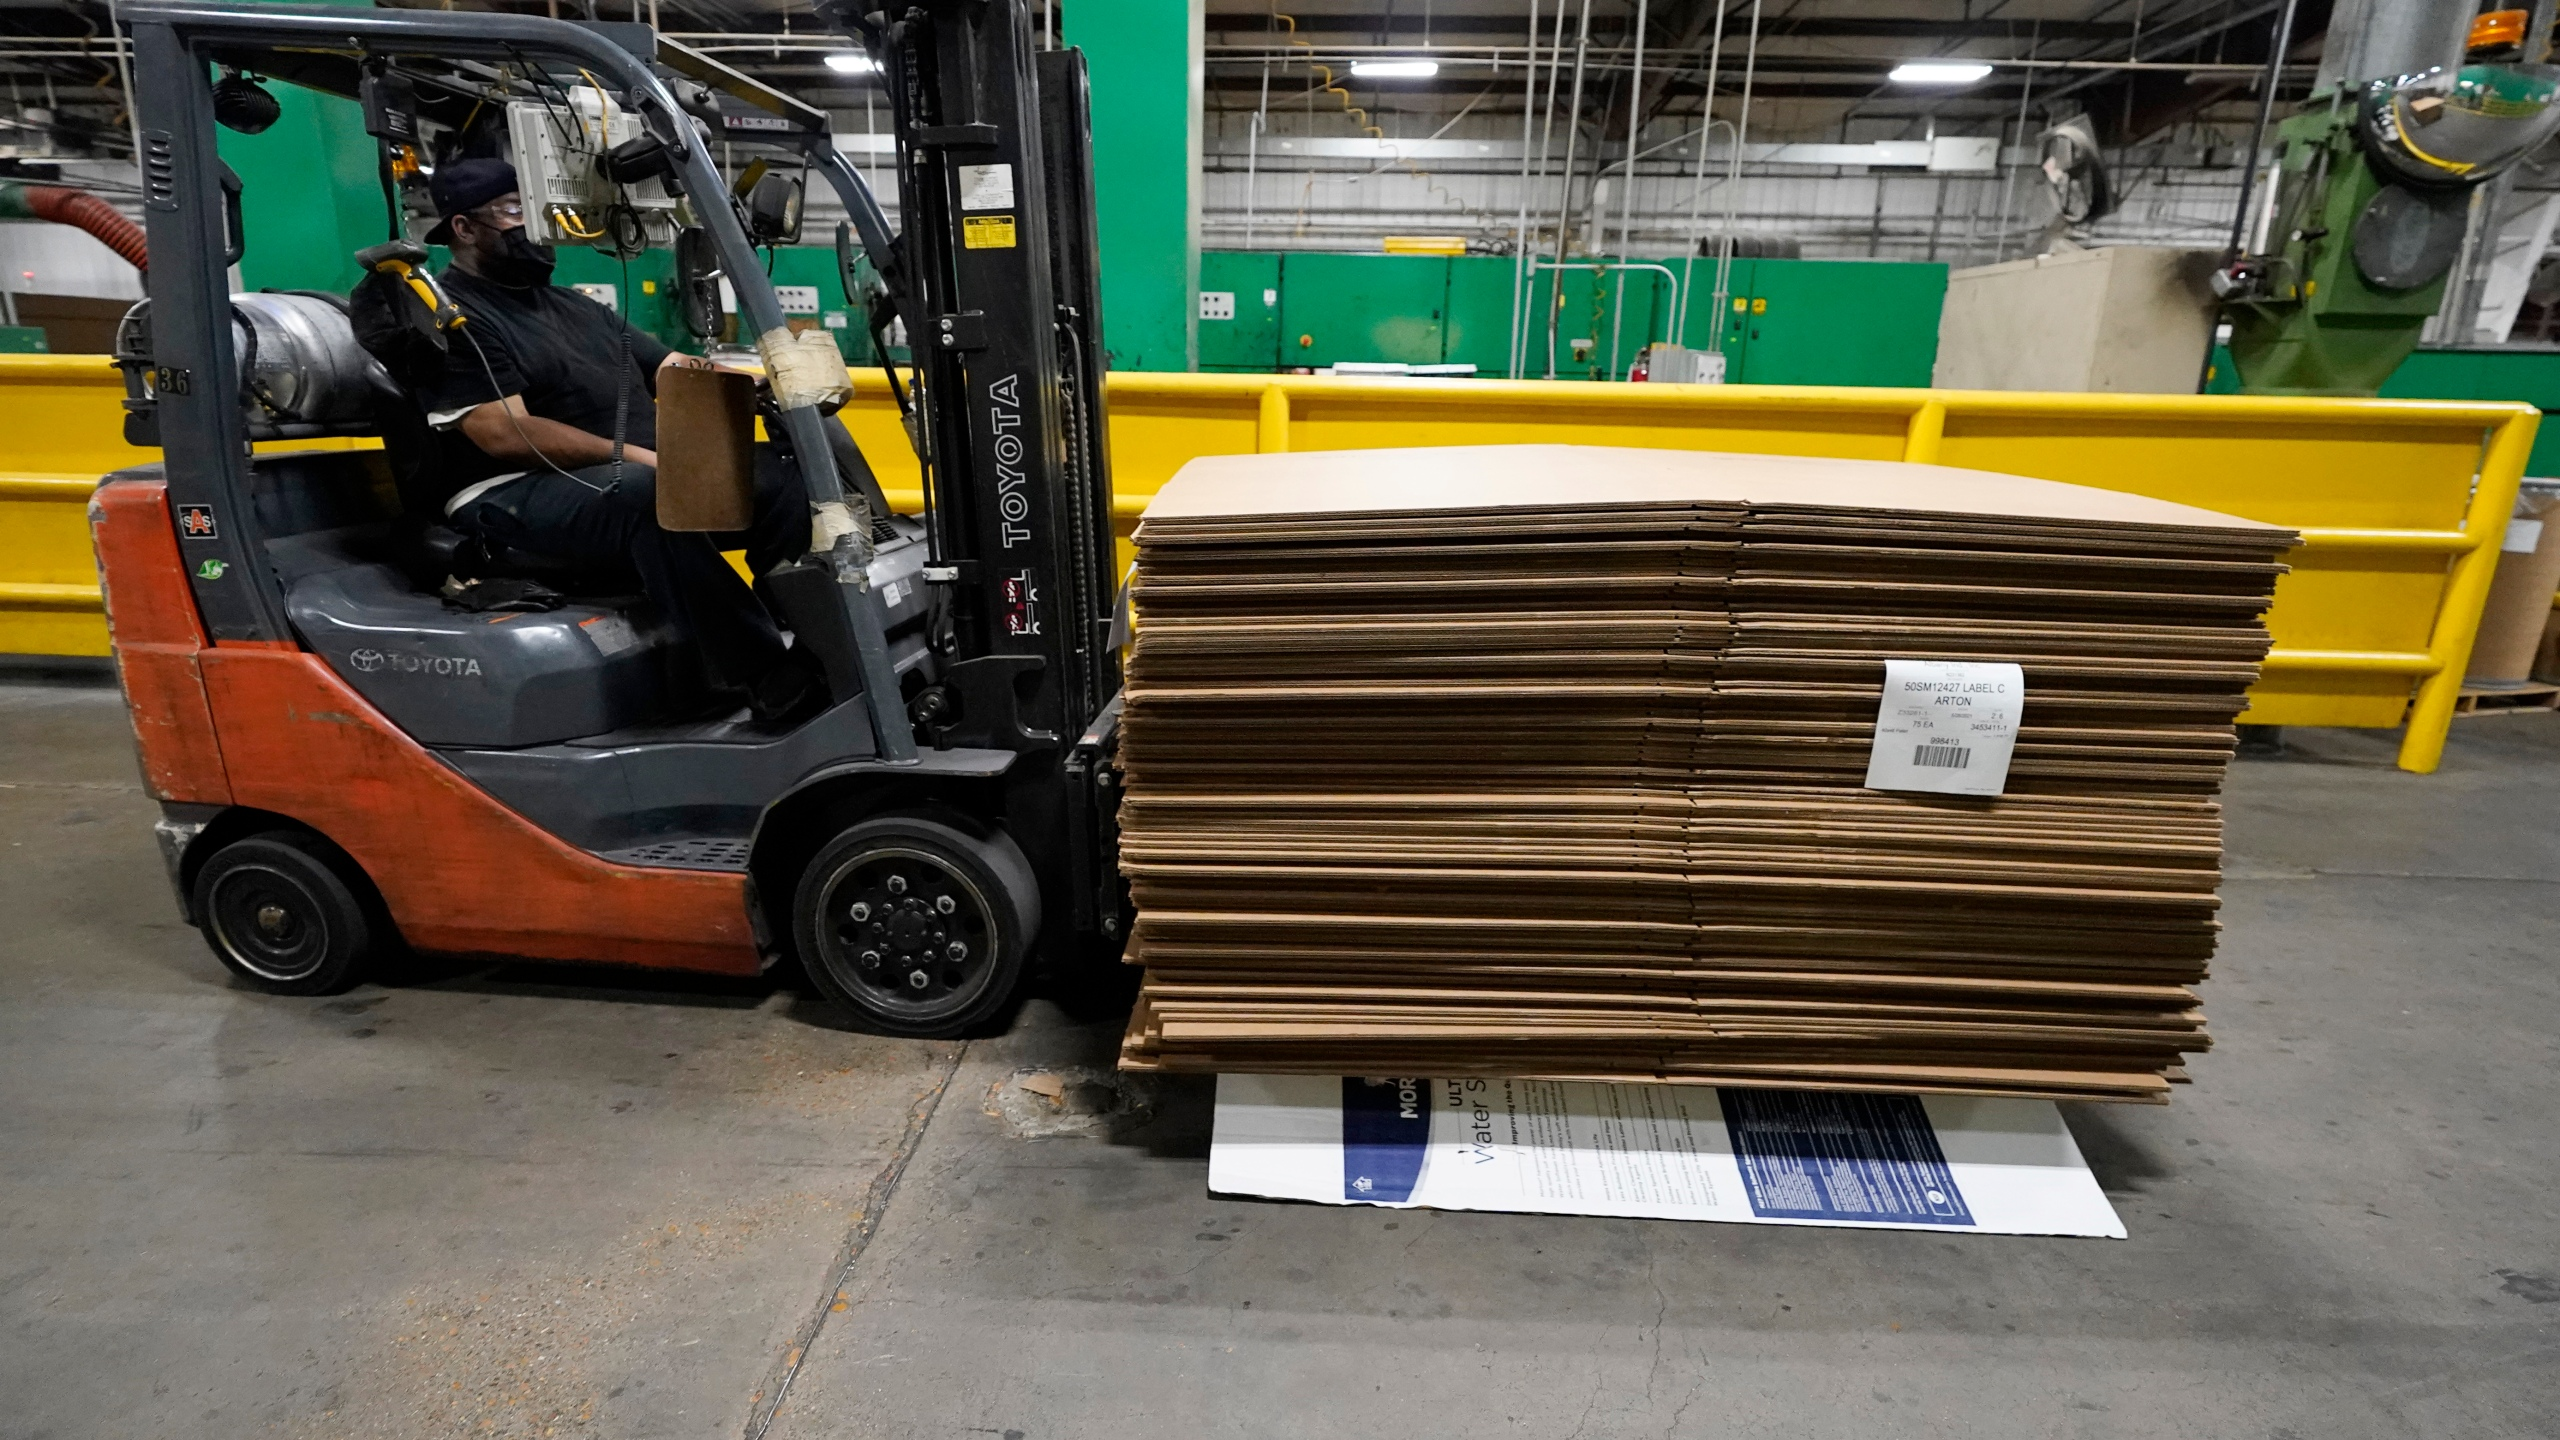 A forklift driver moves a pallet of cardboard boxes at Great Southern Industries, a packaging company in Jackson, Miss., says Friday, May 28, 2021. Charita McCarrol, human resources manager at the company, says that she has seen a lot of people abusing the $300-a-week federal supplement for people who lost their jobs during the COVID-19 pandemic, as well as other programs that offered extended support for the unemployed. She also cited the pool of needed certified and experienced forklift drivers and other positions are limited because of the said abuse. (AP Photo/Rogelio V. Solis)